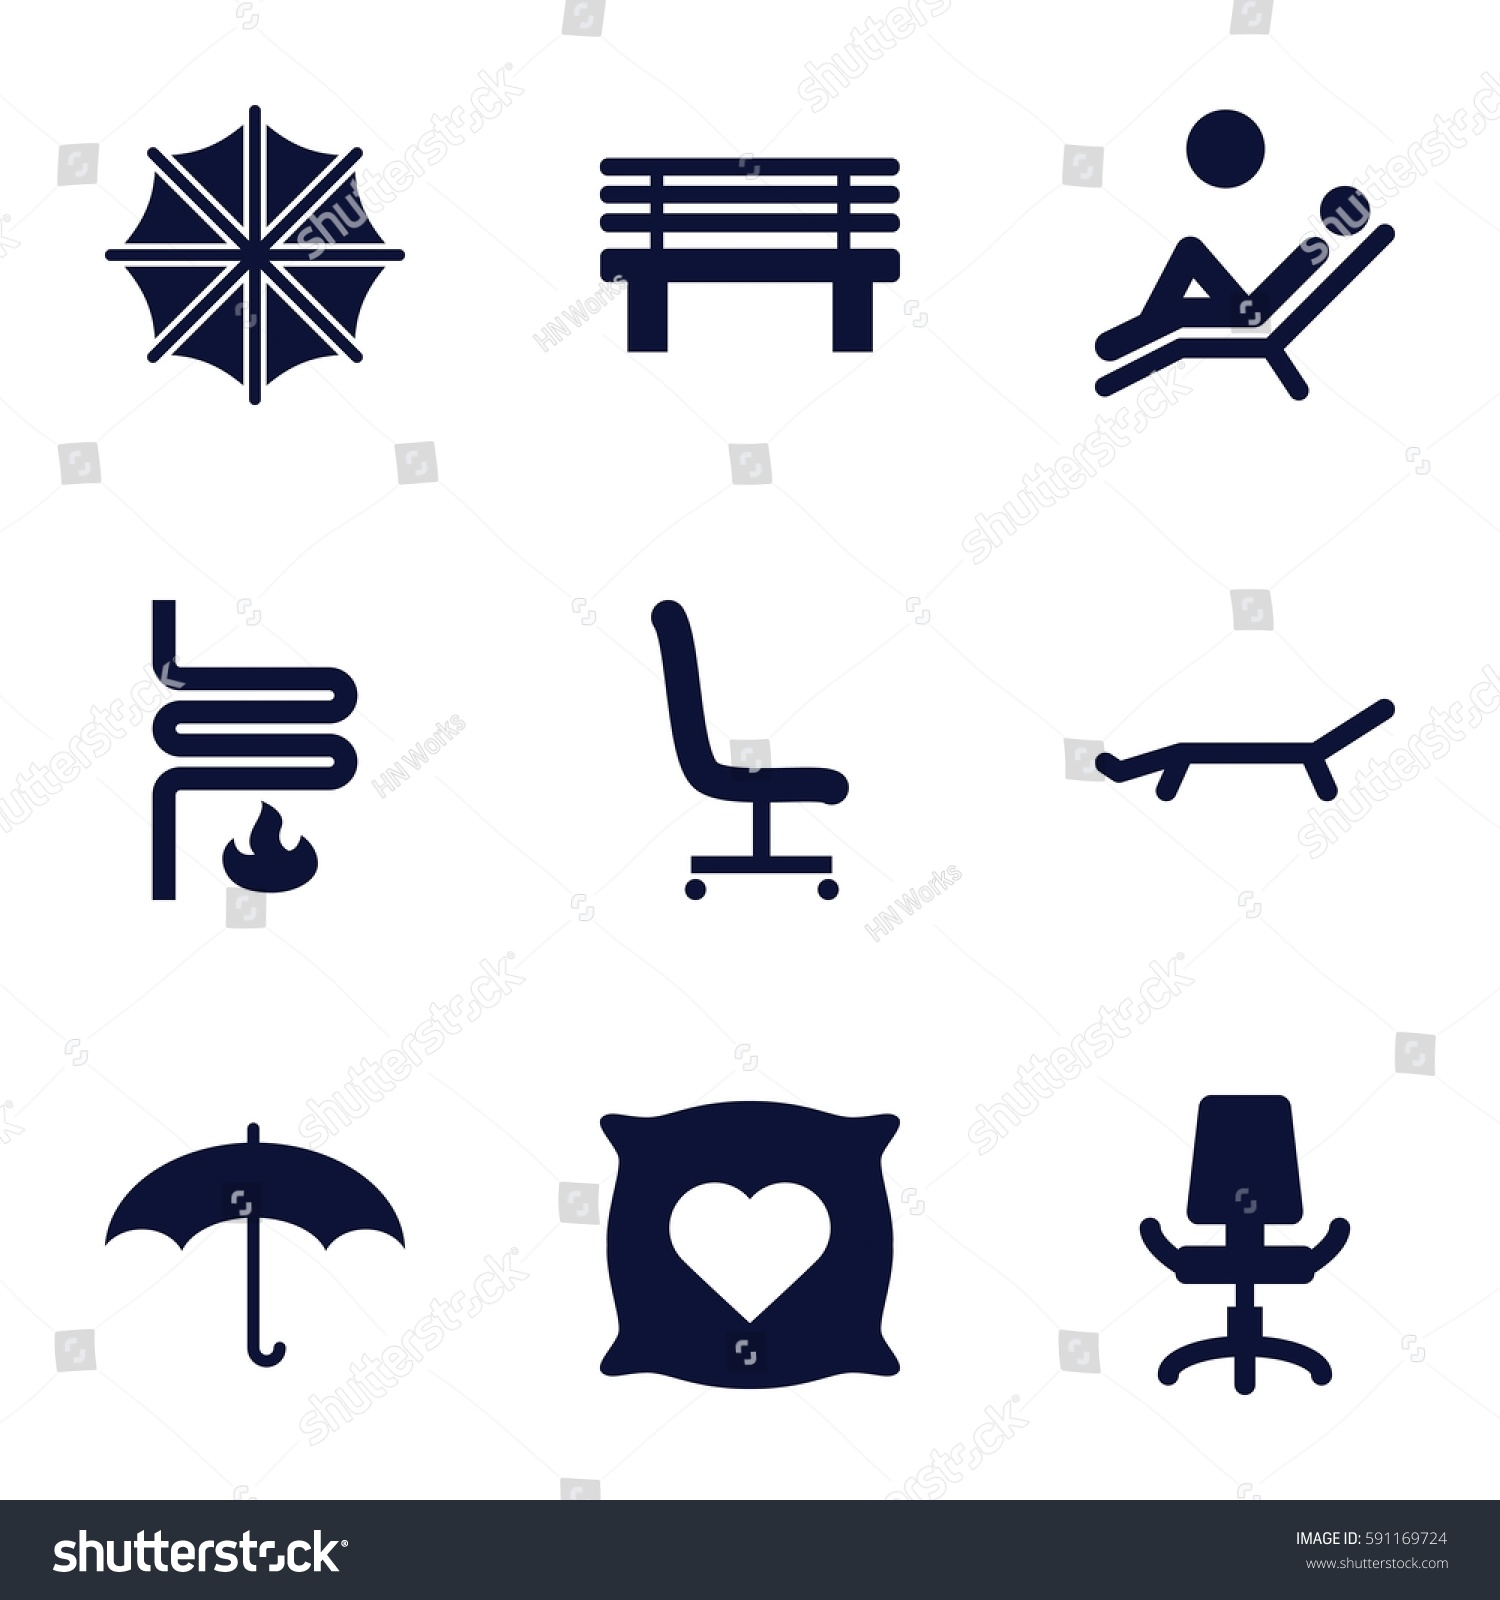 Comfort icons set set 9 comfort stock vector 591169724 shutterstock comfort icons set set of 9 comfort filled icons such as pillow with heart on biocorpaavc Images